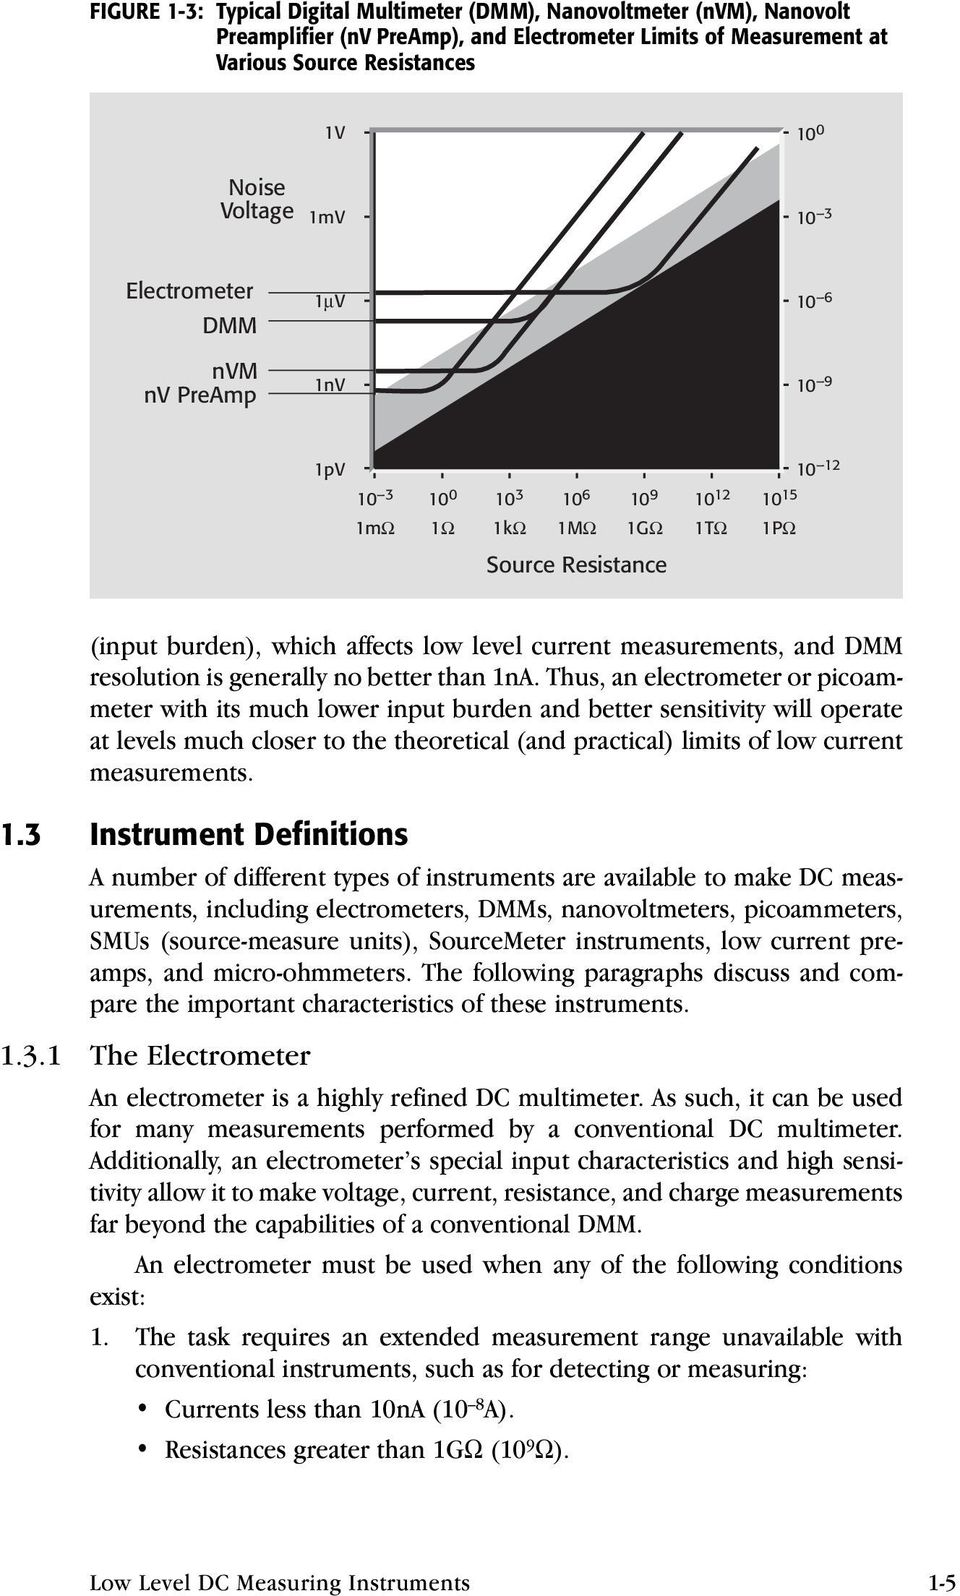 measurements, and DMM resolution is generally no better than 1nA.